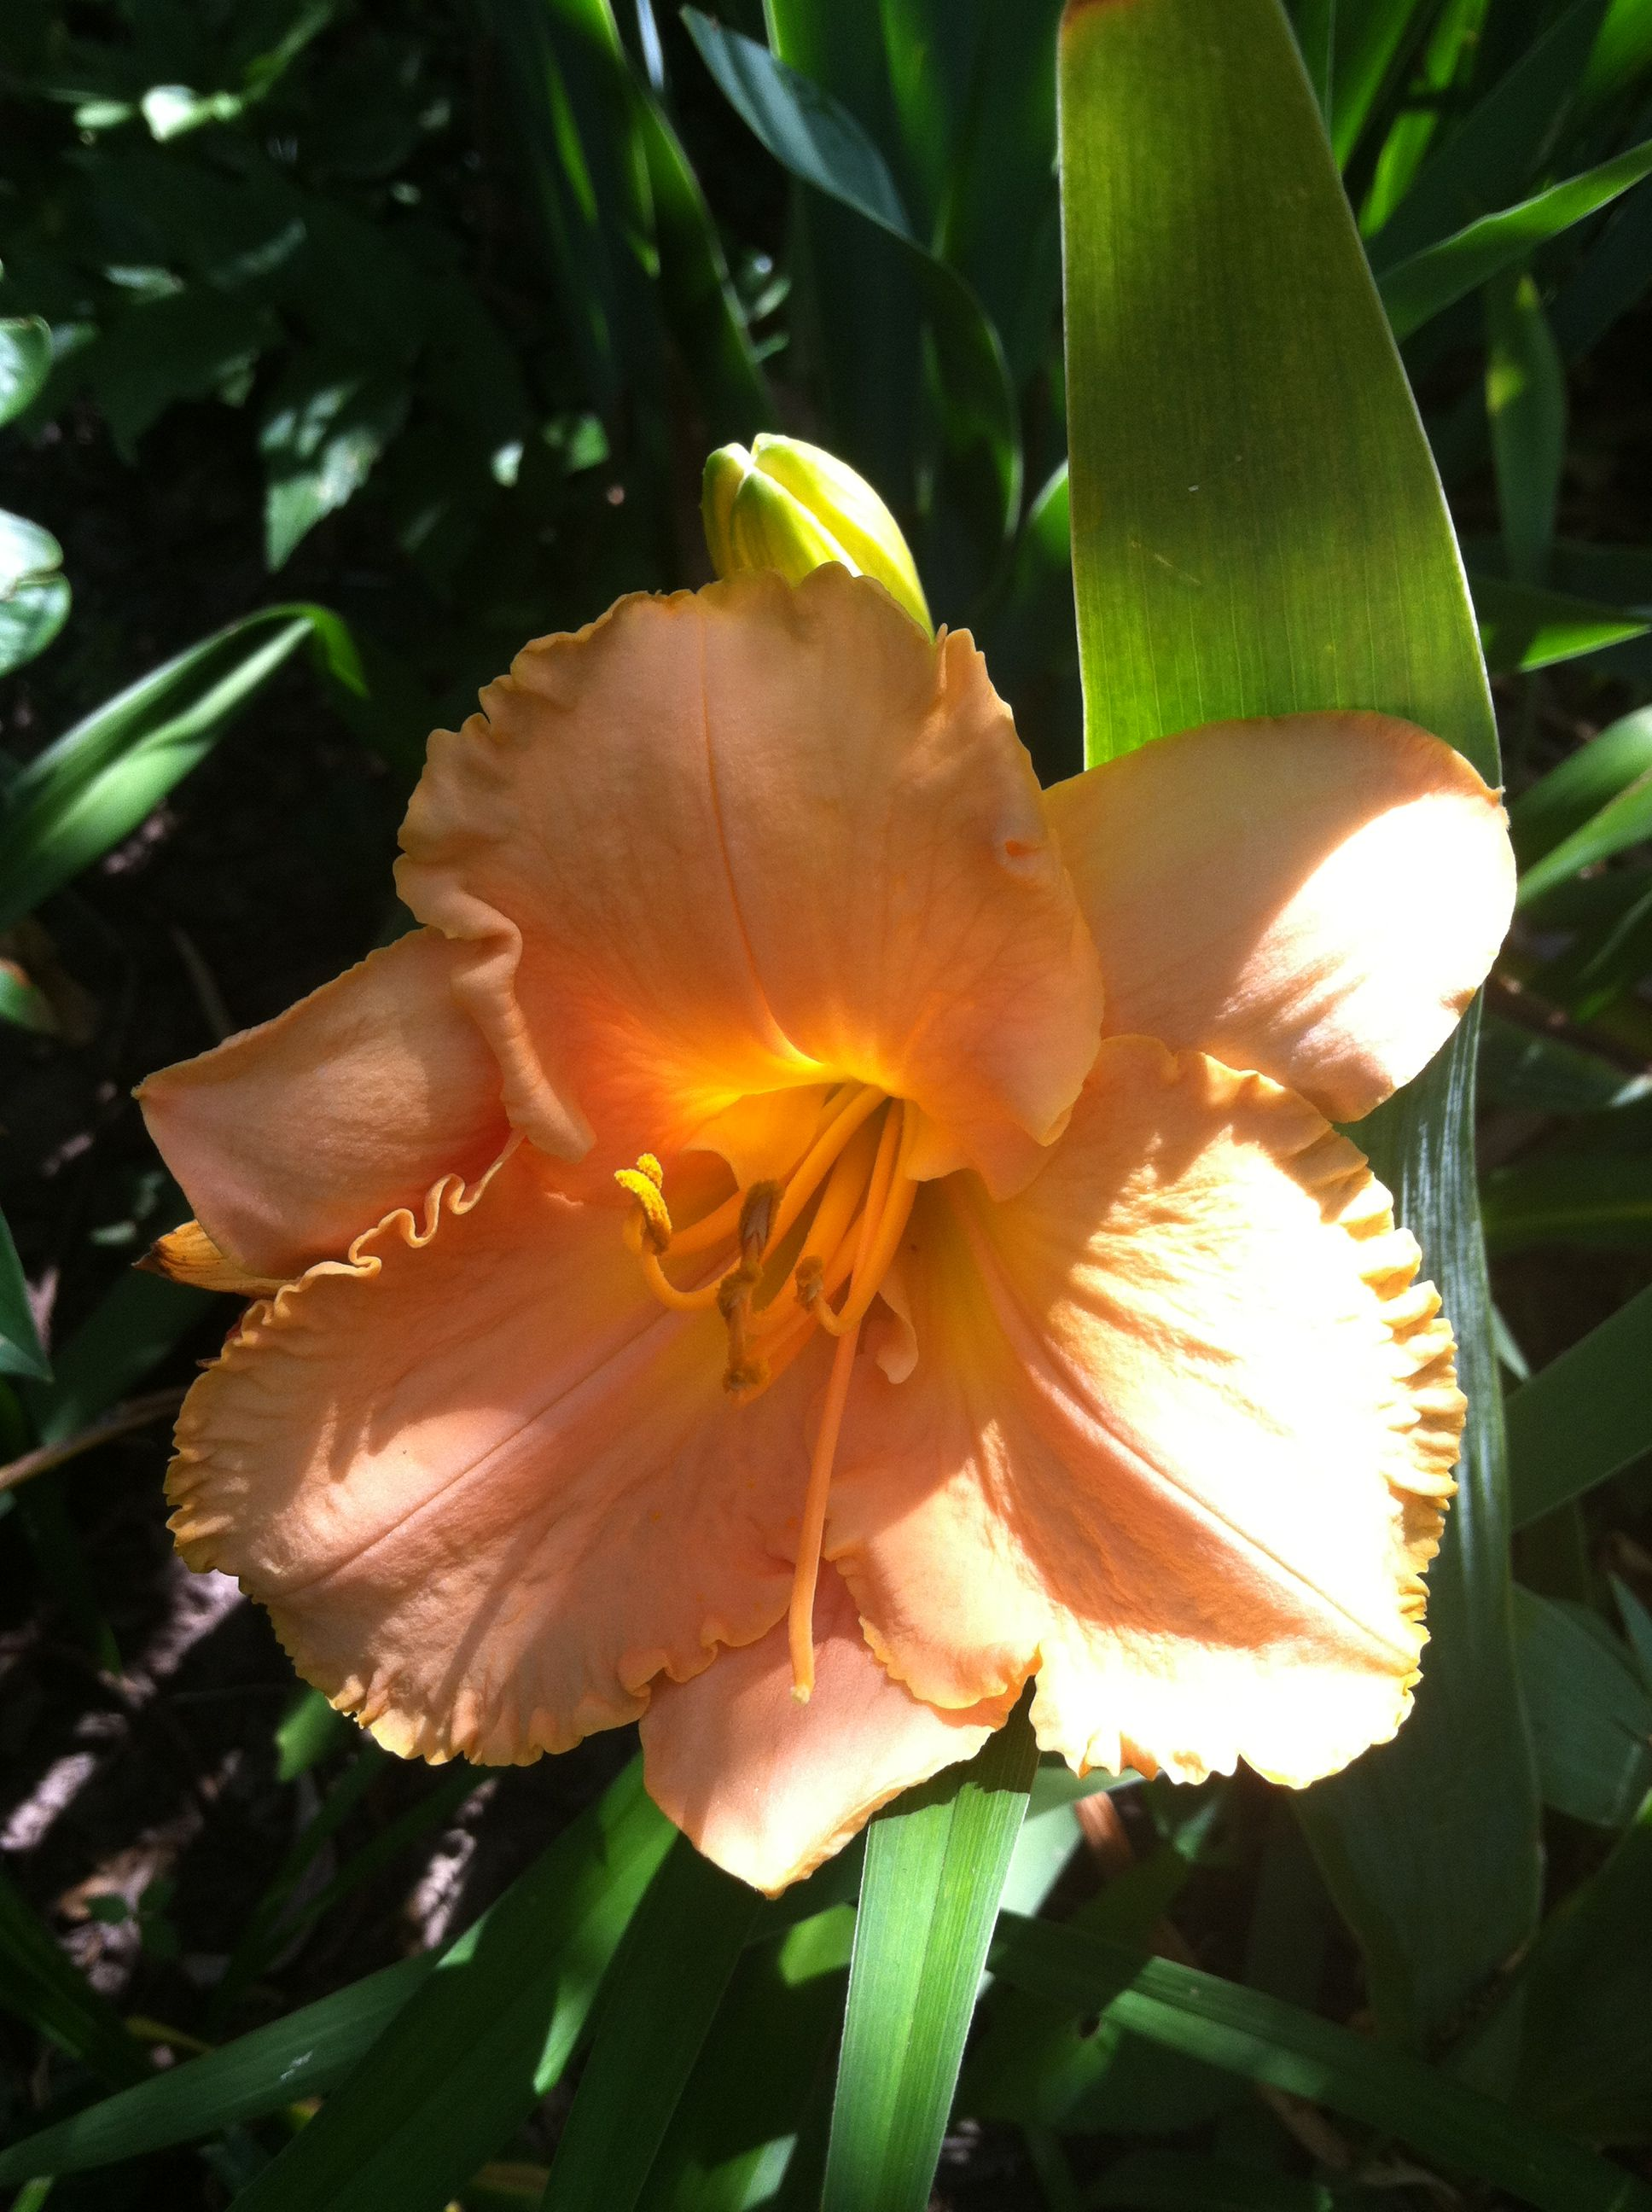 Pale Moon Garden I Planted This Type Day Lily In My Moon Garden